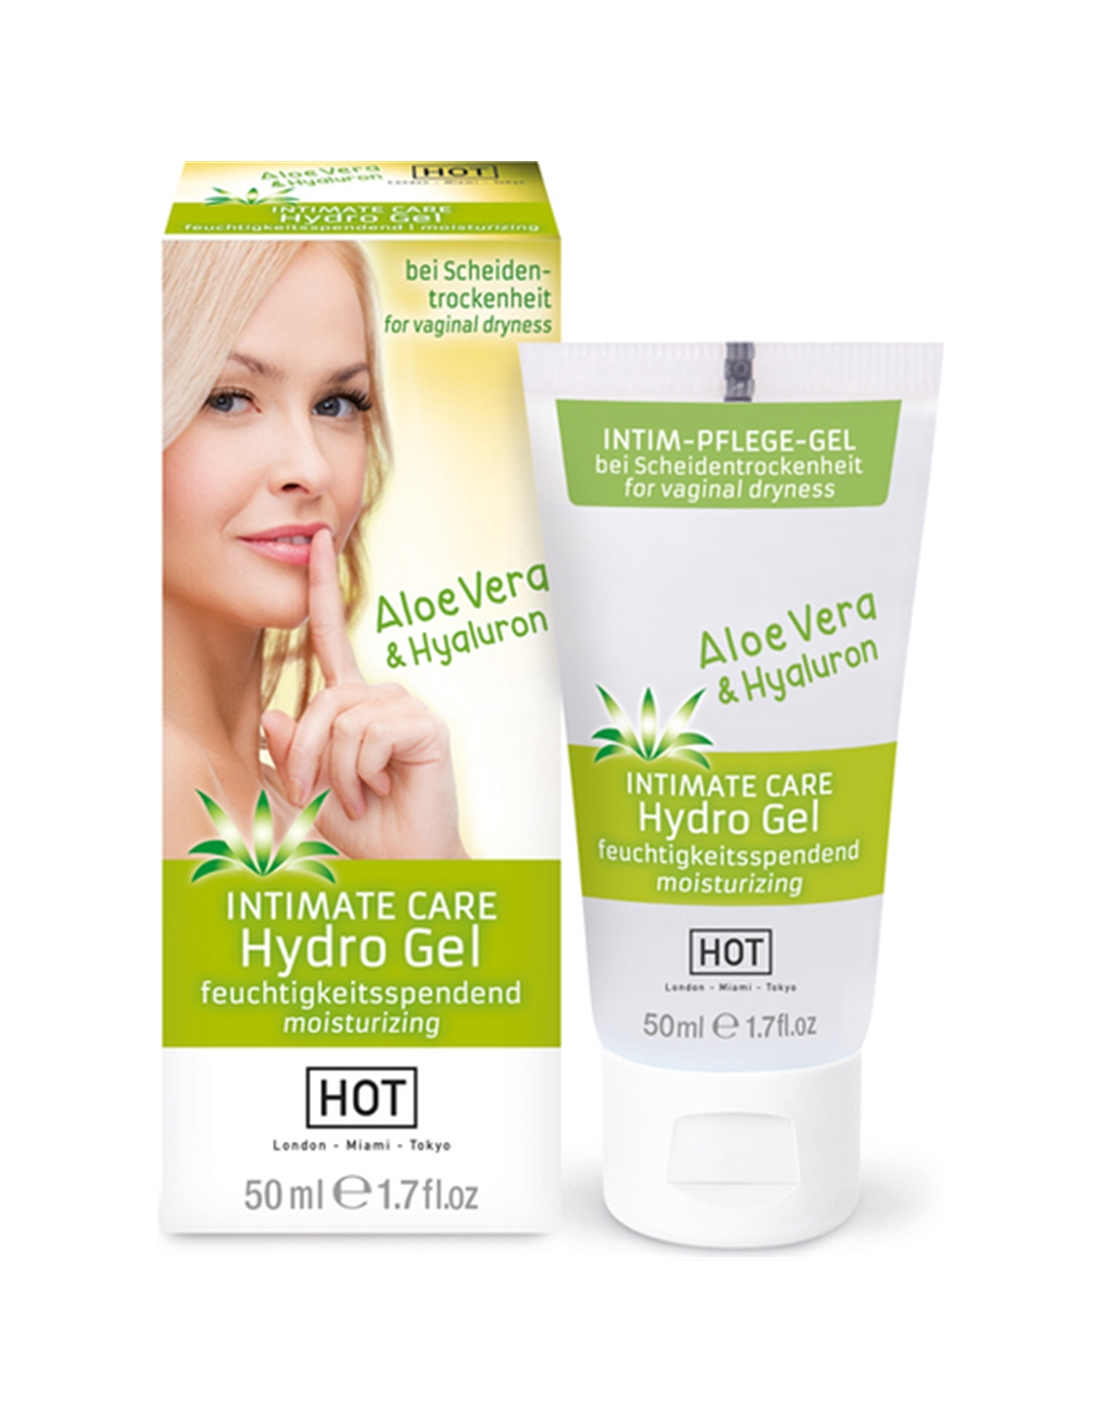 Gel Intimate Care Hydro Gel - 50ml - PR2010337146